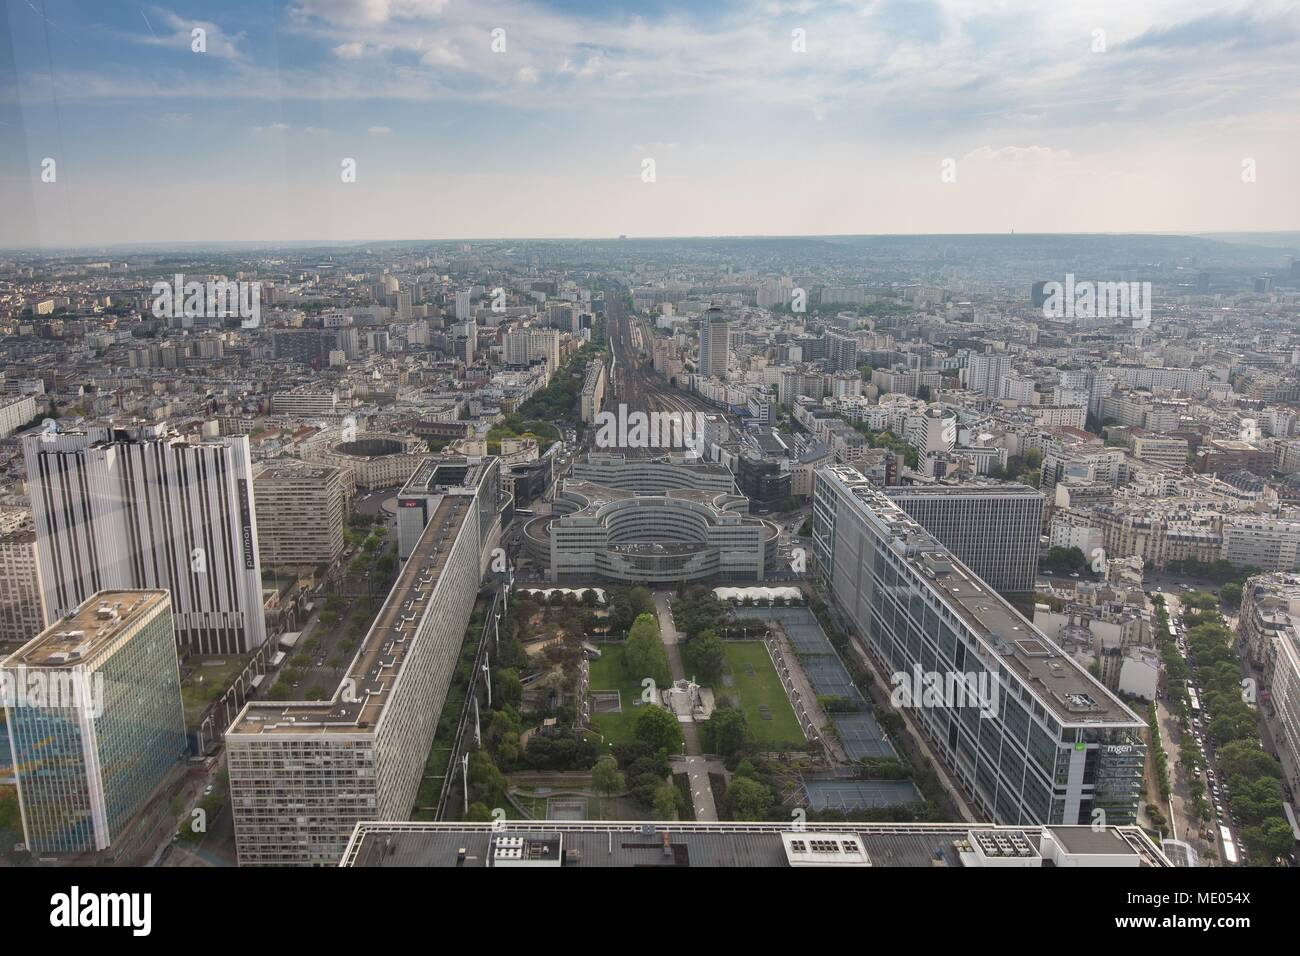 aerial view of paris from the 56th floor of the tour montparnasse jardin atlantique and railways of the montparnasse station - Jardin Atlantique